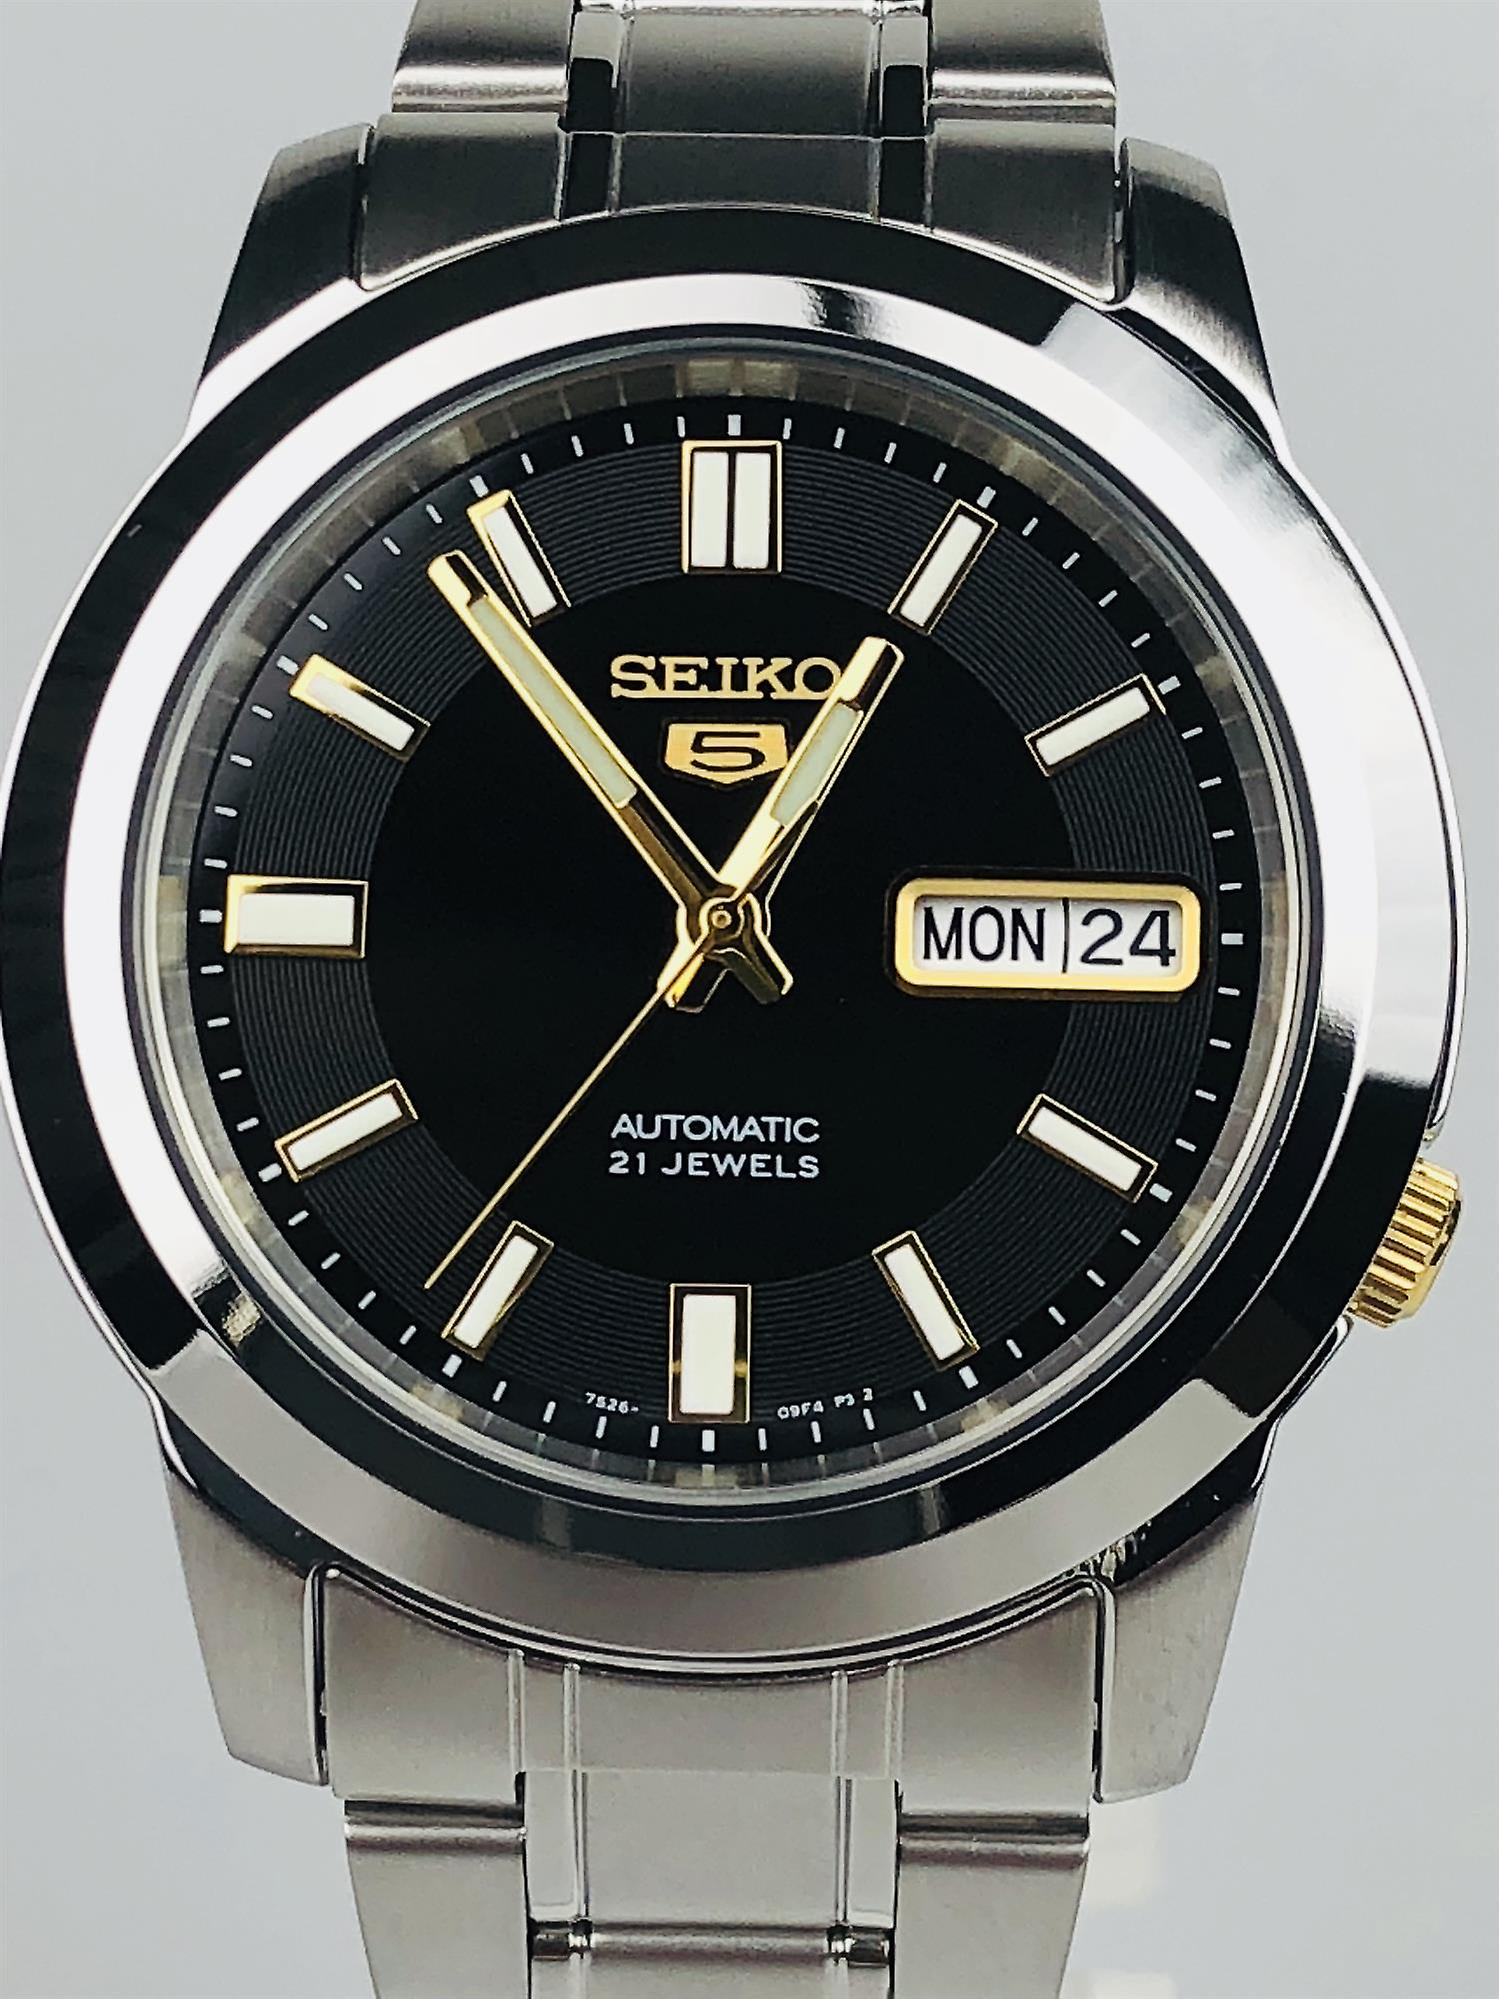 Seiko 5 Sports Automatic Silver Silver Stainless Steel Strap SNKK17K1 38mm